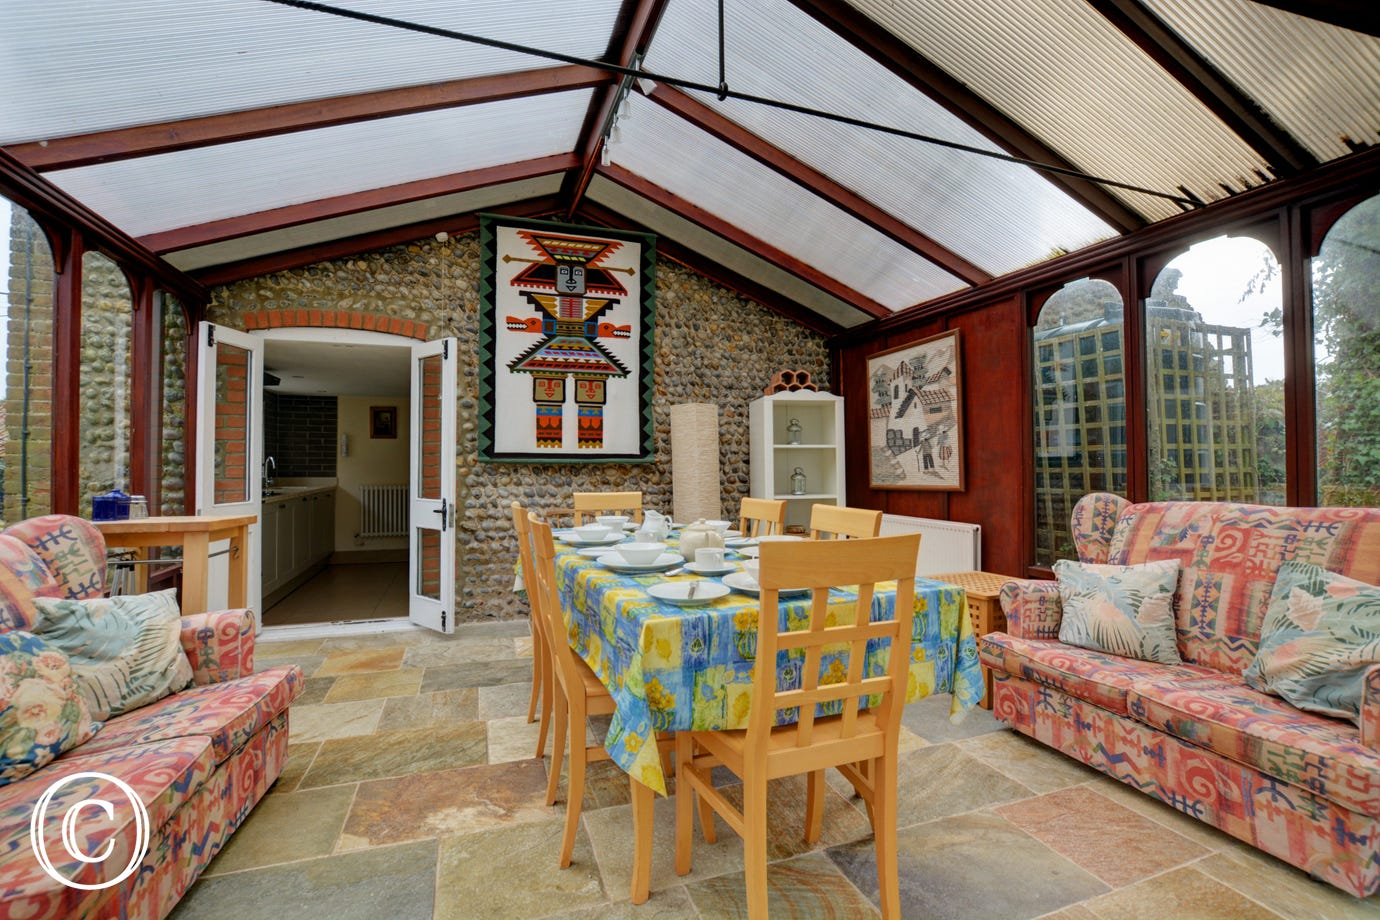 The conservatory is light and airy with a breakfast table,  chairs and comfortable seating